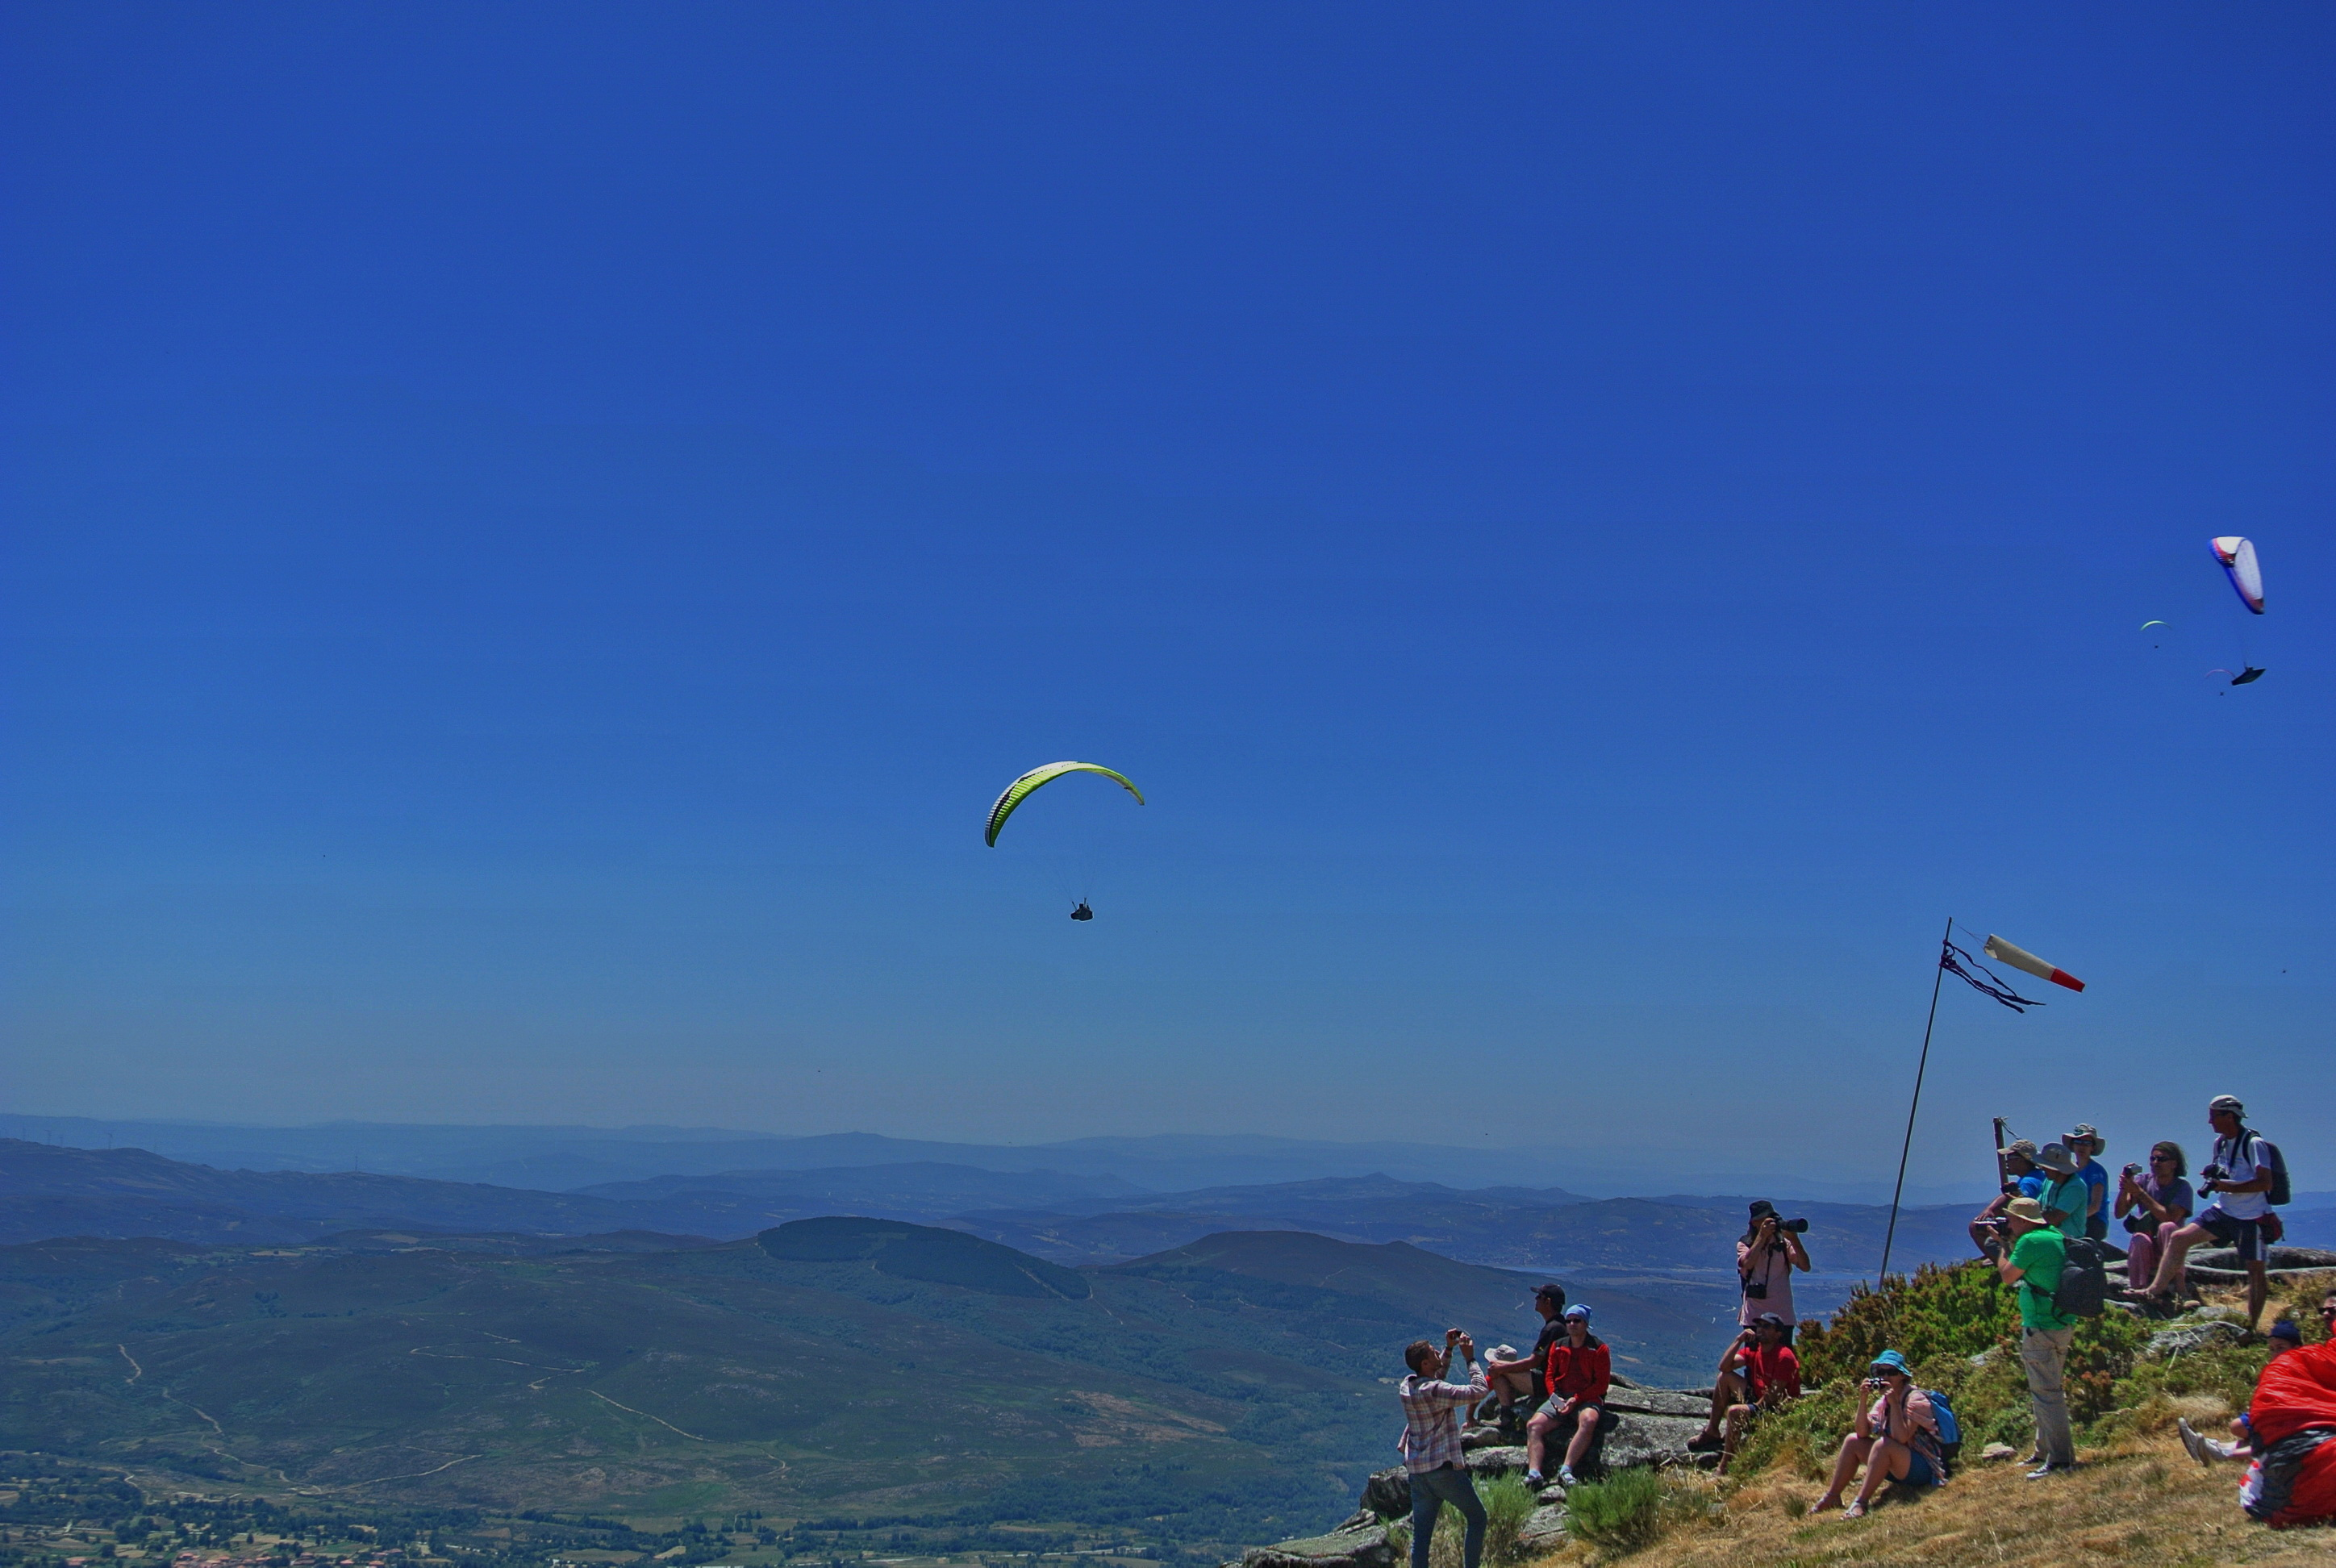 NearBirds. Portugal. Montalegre